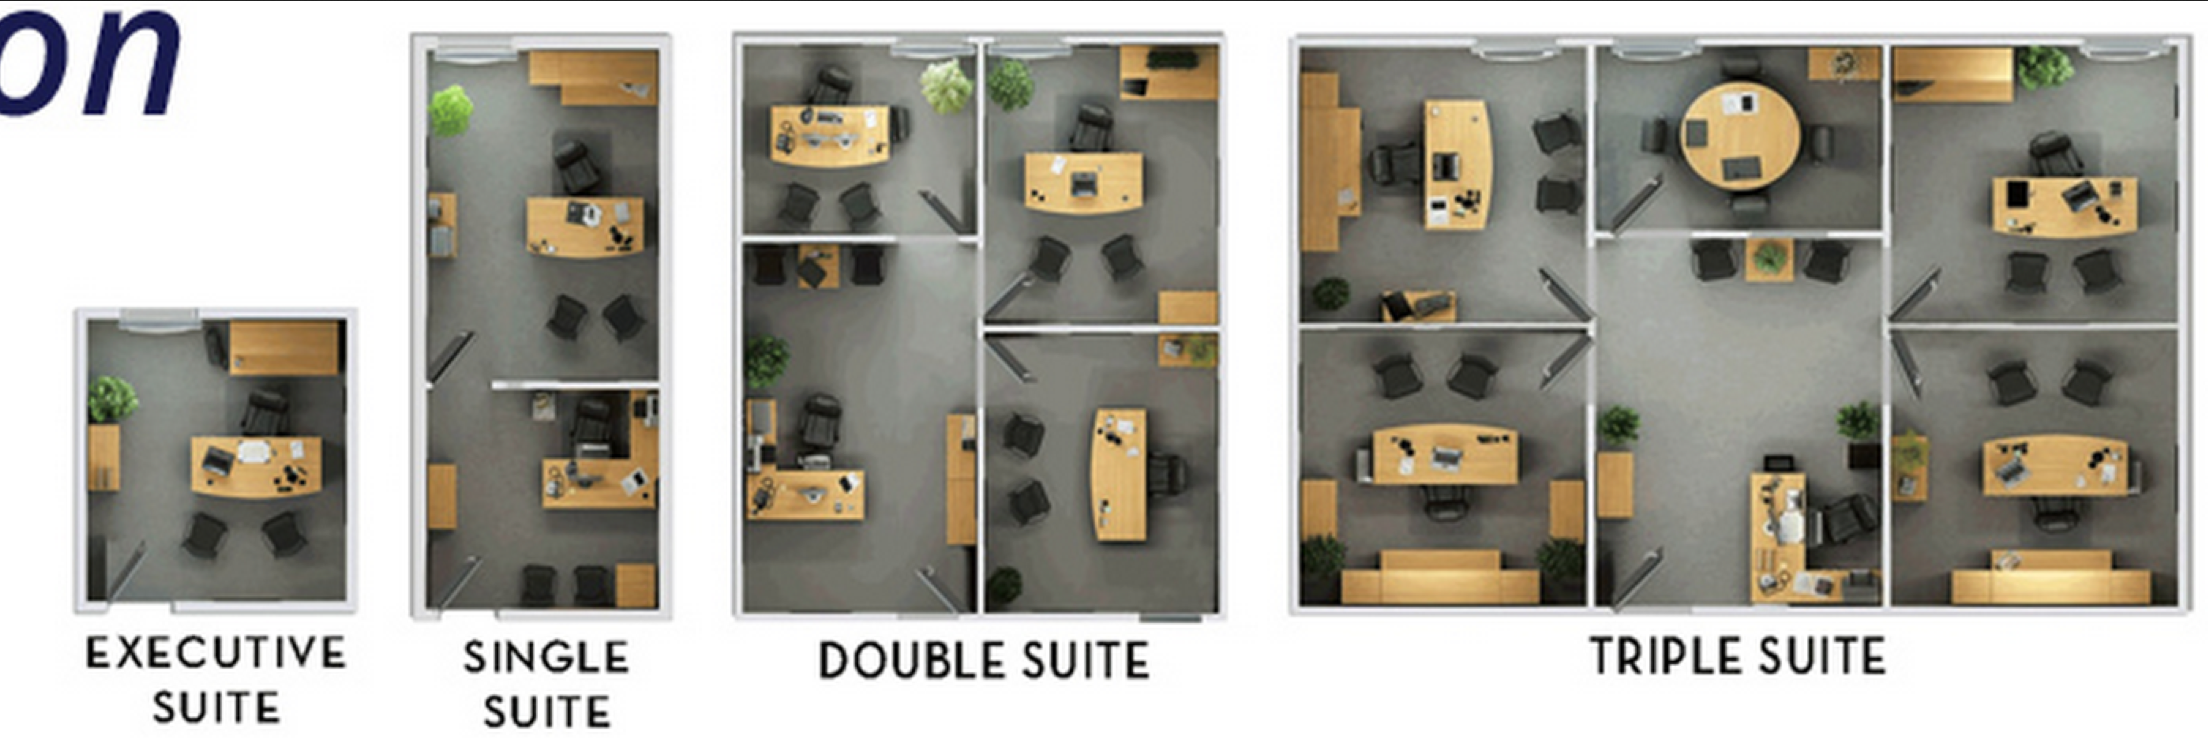 small office layouts. single suite and multi oddice layouts entrepreneurs small office